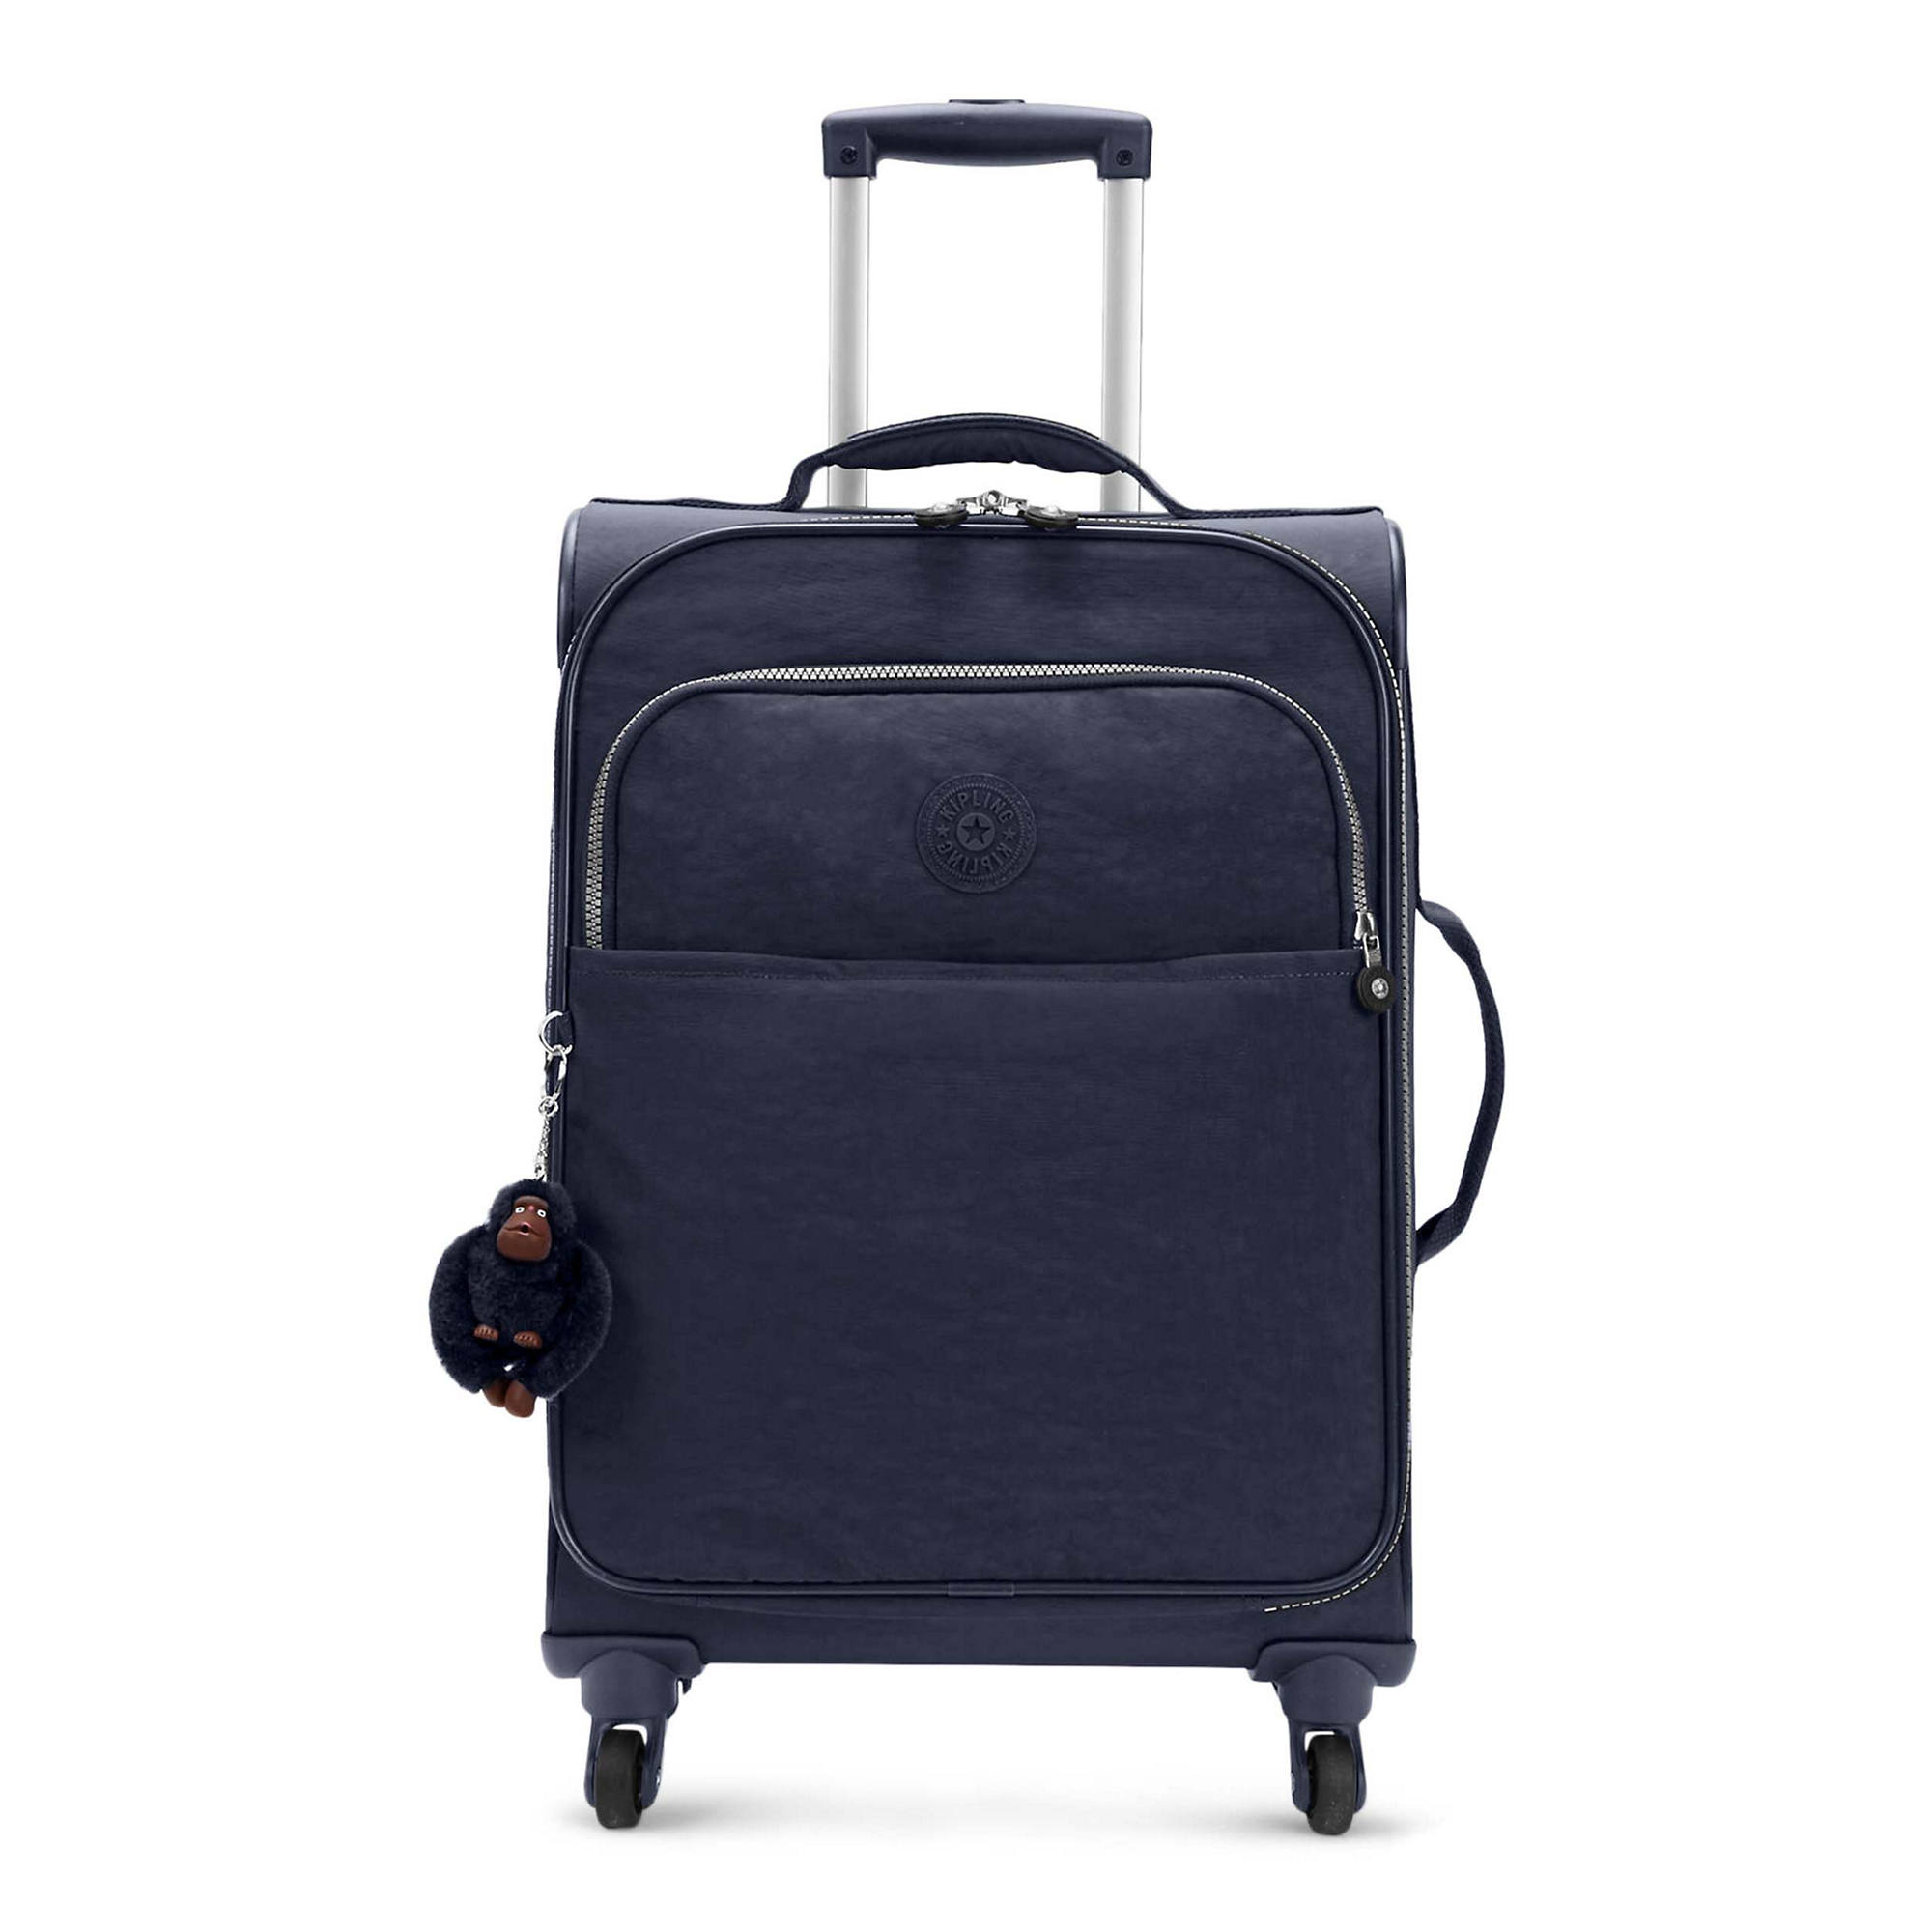 9477acd2ec19 Parker Small Carry-On Rolling Luggage